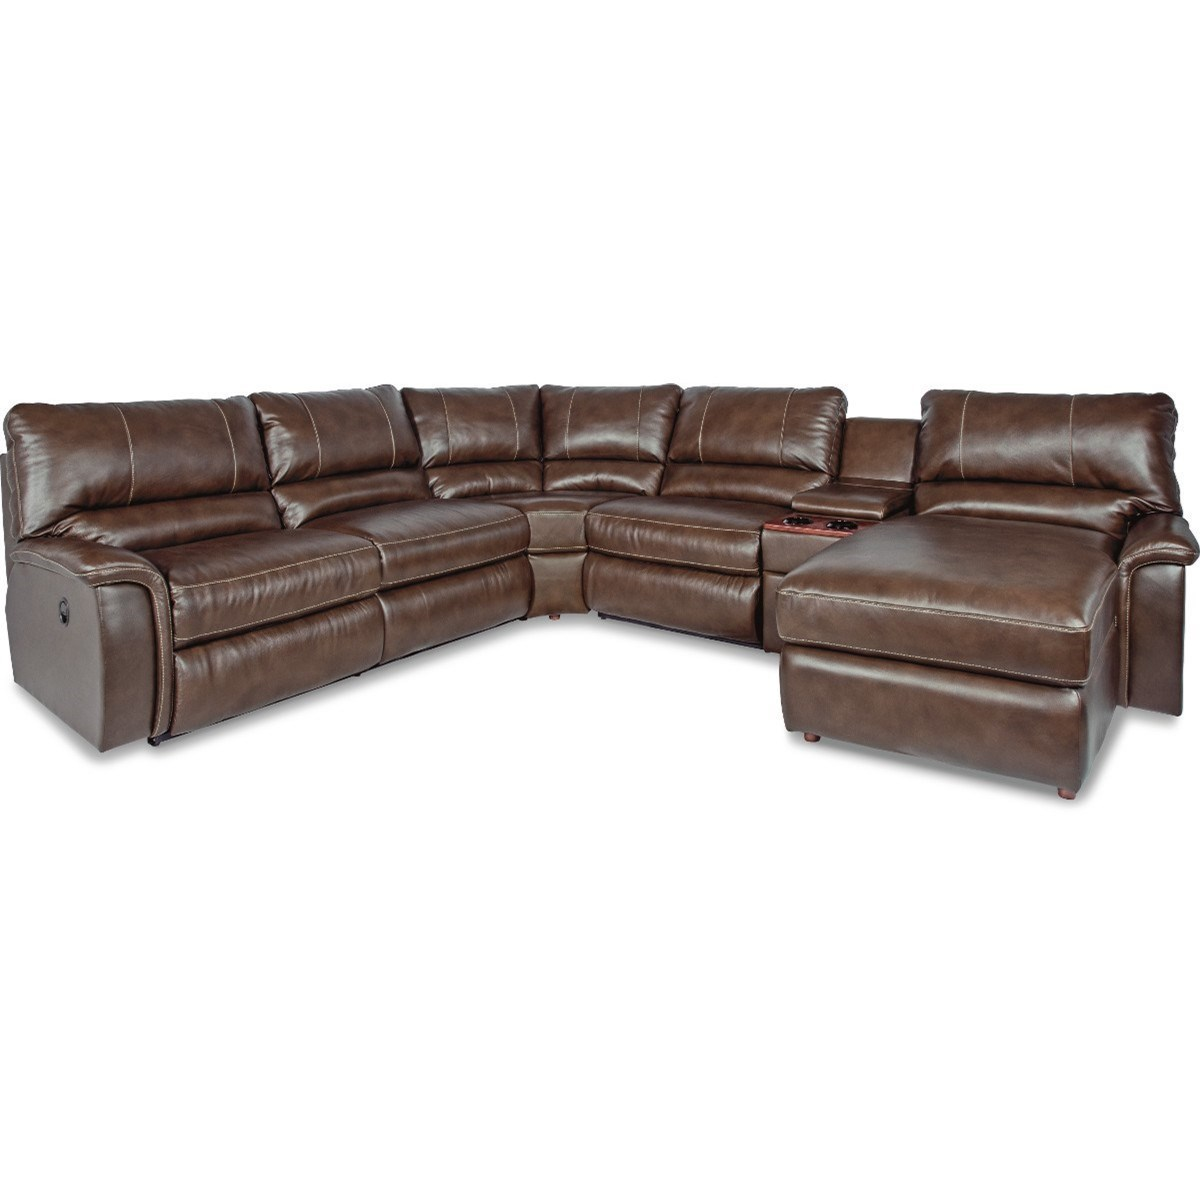 sectional sofas with recliners and bed colorado springs la z boy aspen six piece reclining sofa right arm chaise cupholders